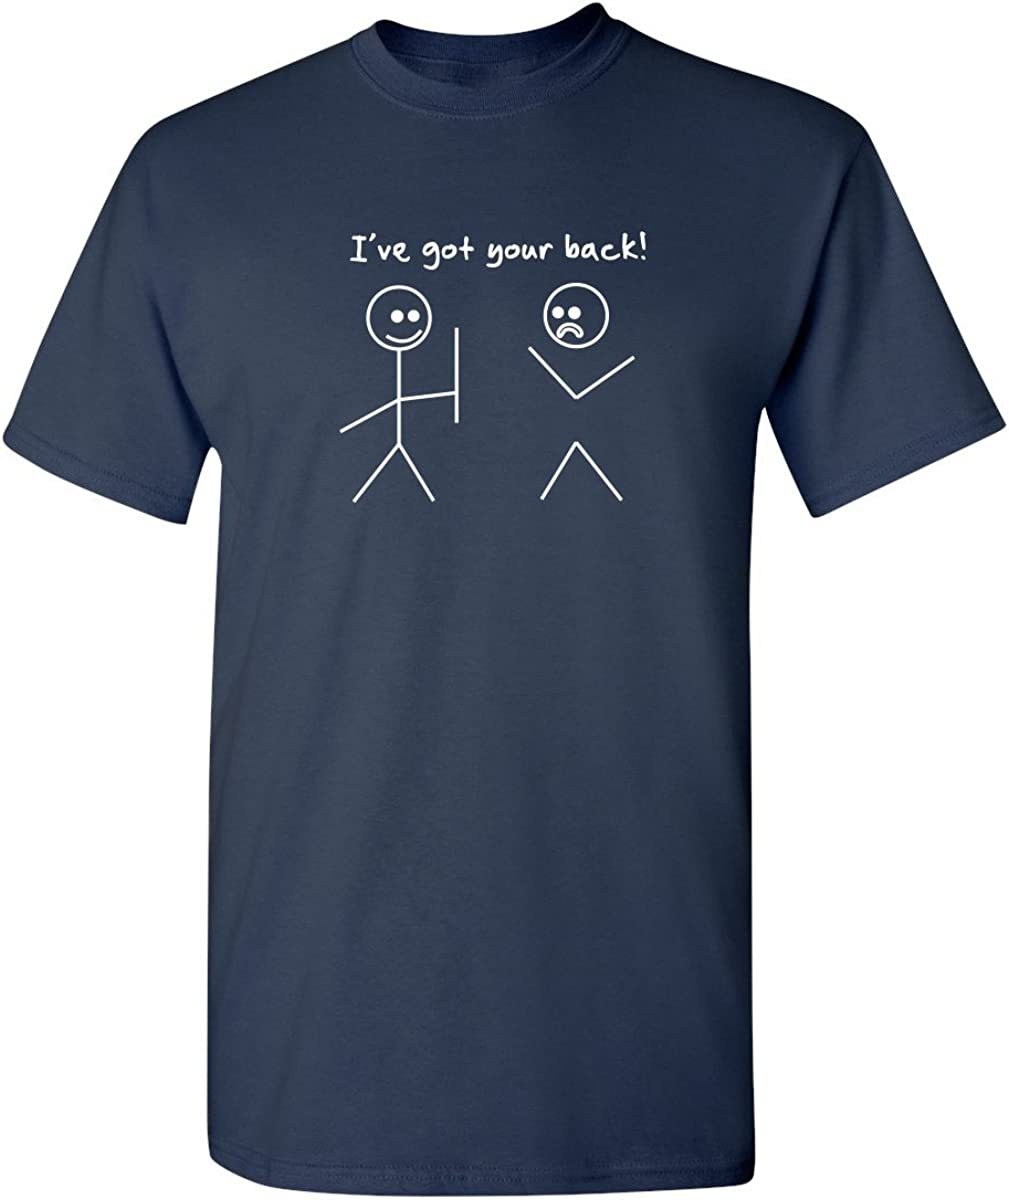 I Got Your Back Stick Figure Friendship Novelty Sarcasm Teens Funny T Shirt